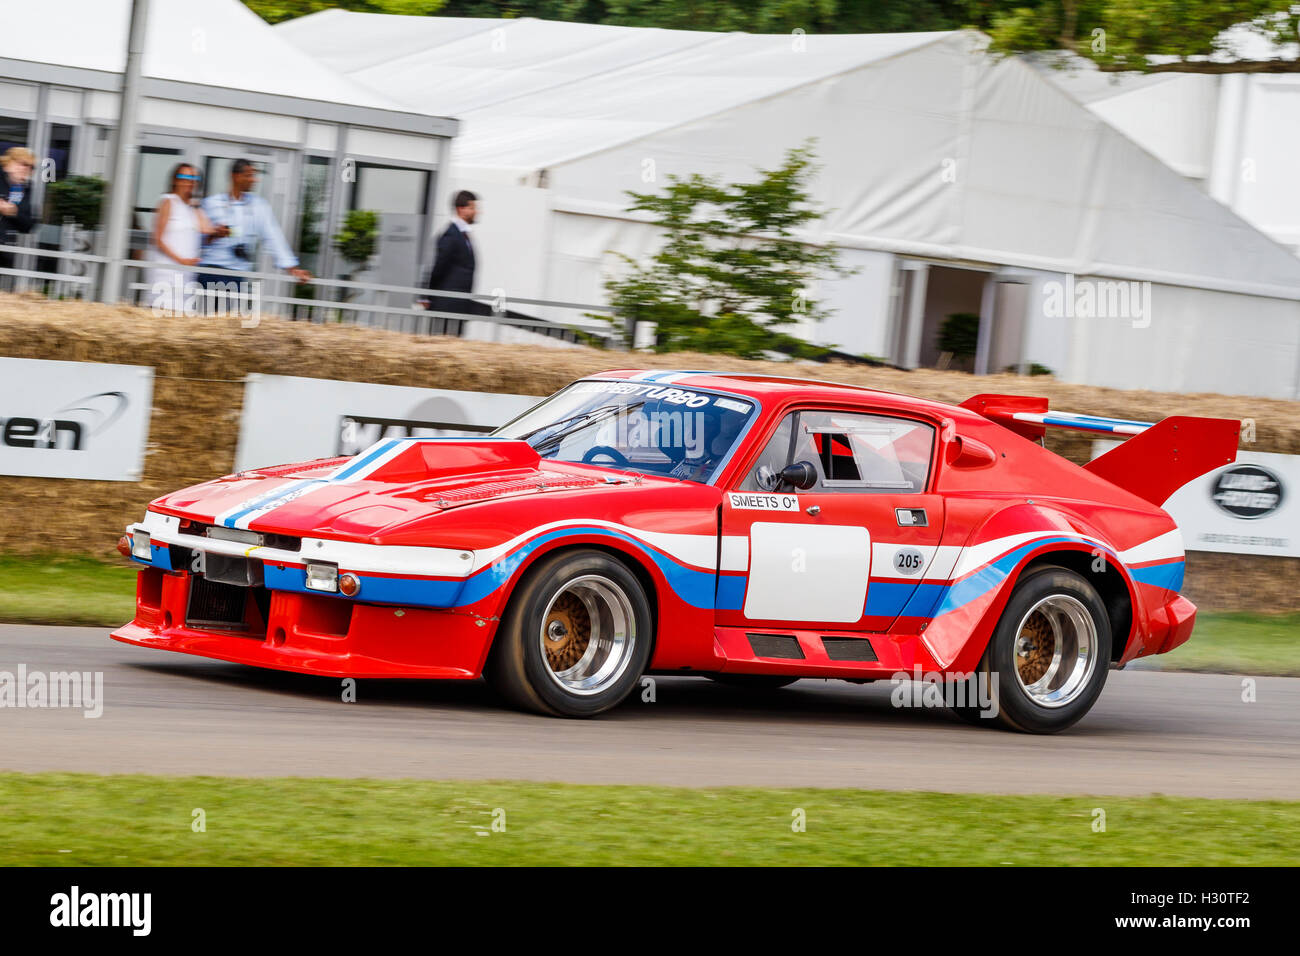 1977-triumph-tr7-v8-turbo-le-mans-with-driver-bert-smeets-at-the-2016-H30TF2.jpg